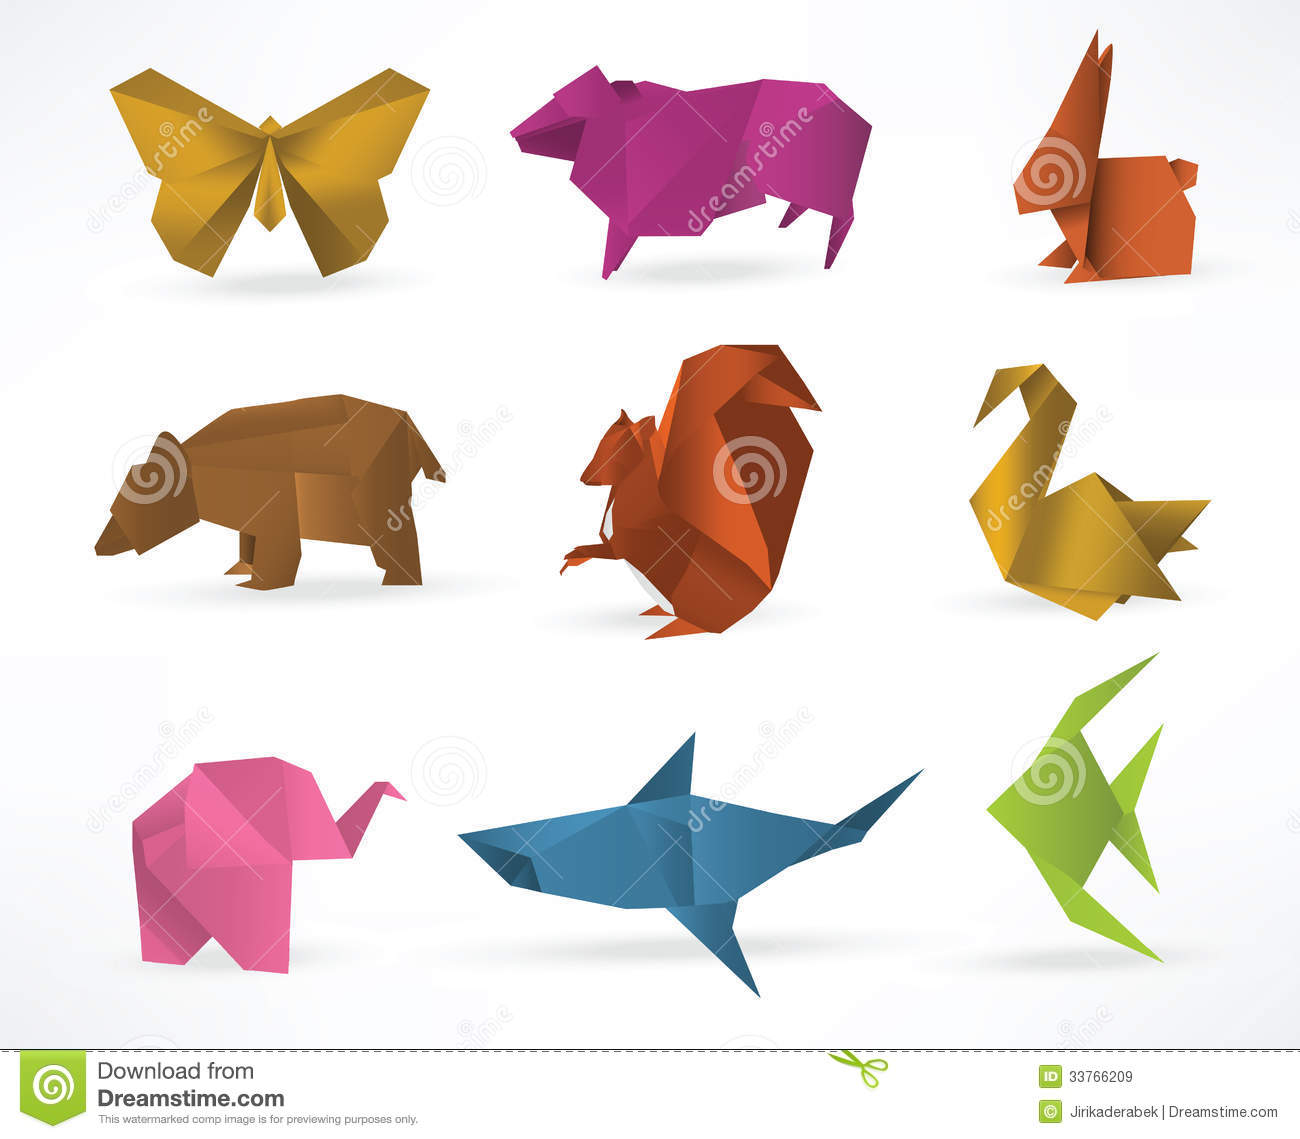 How To Make An Origami Bear Face